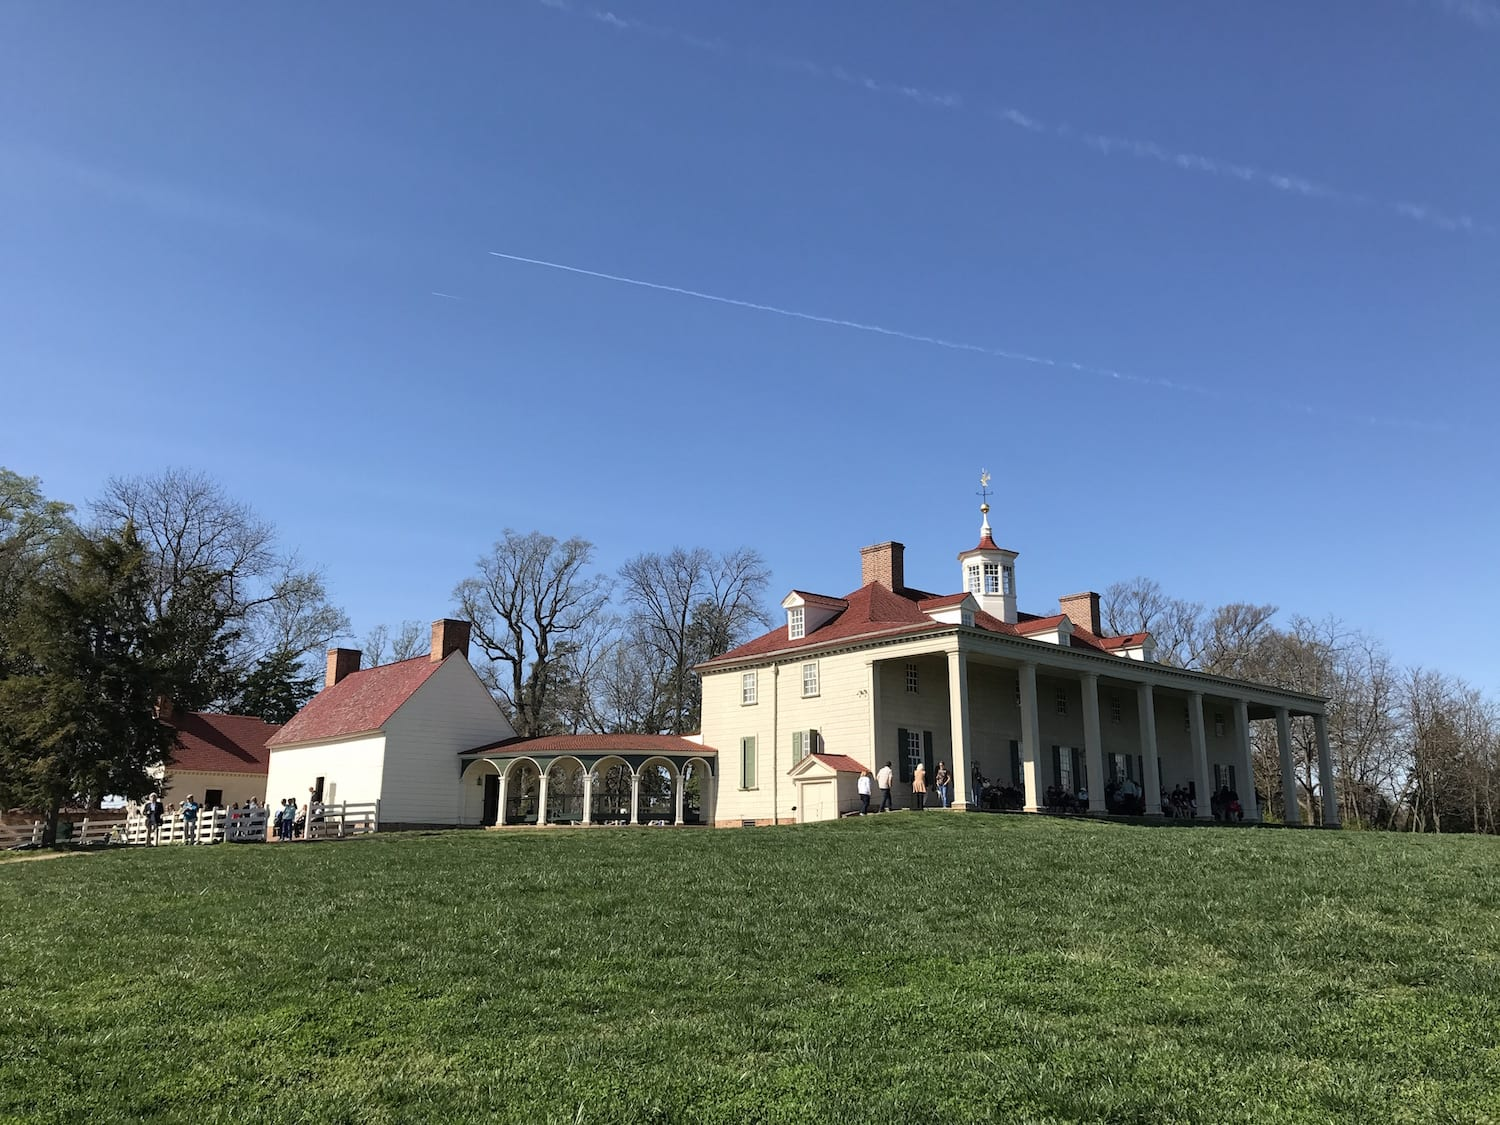 Visiting Washingtons Mount Vernon